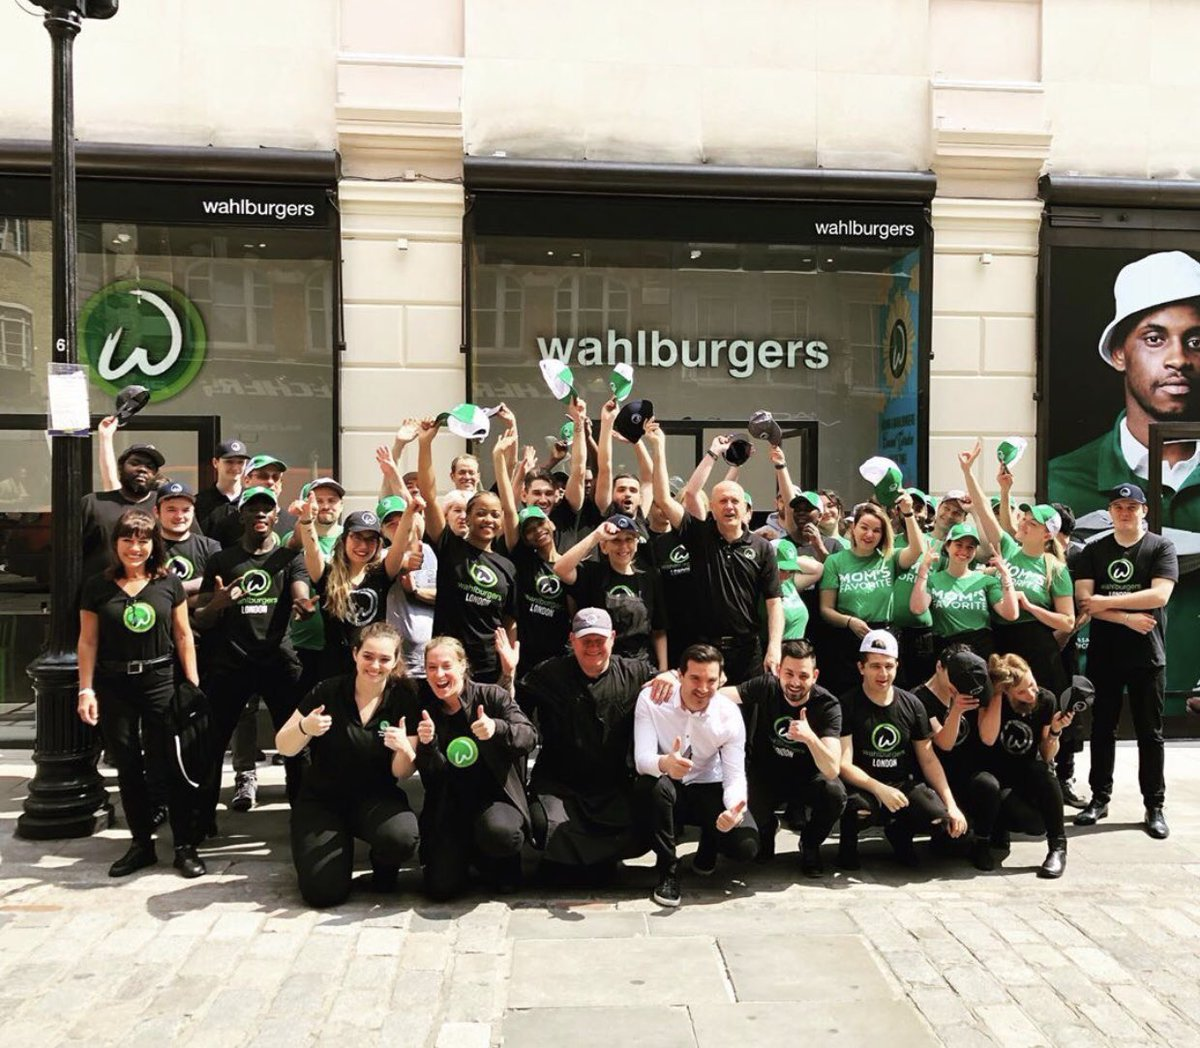 Hello London! @Wahlburgers is officially open in Covent Garden today!! ???????????? https://t.co/dFUJCmwQmV